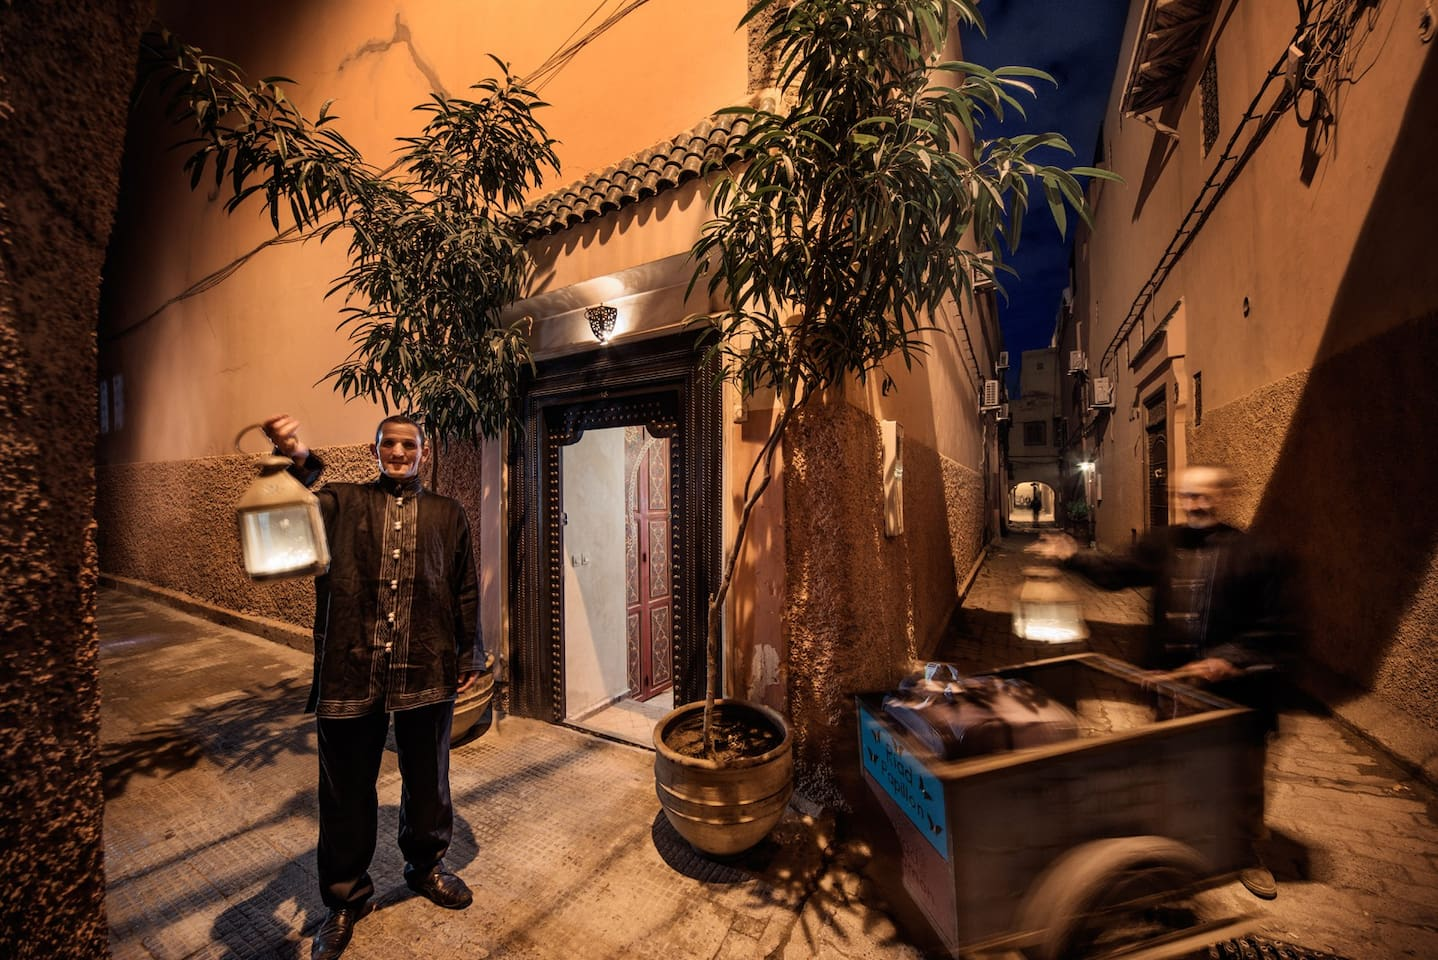 Dar Habiba, a traditional Riad in the heart of Marrakech, Medina